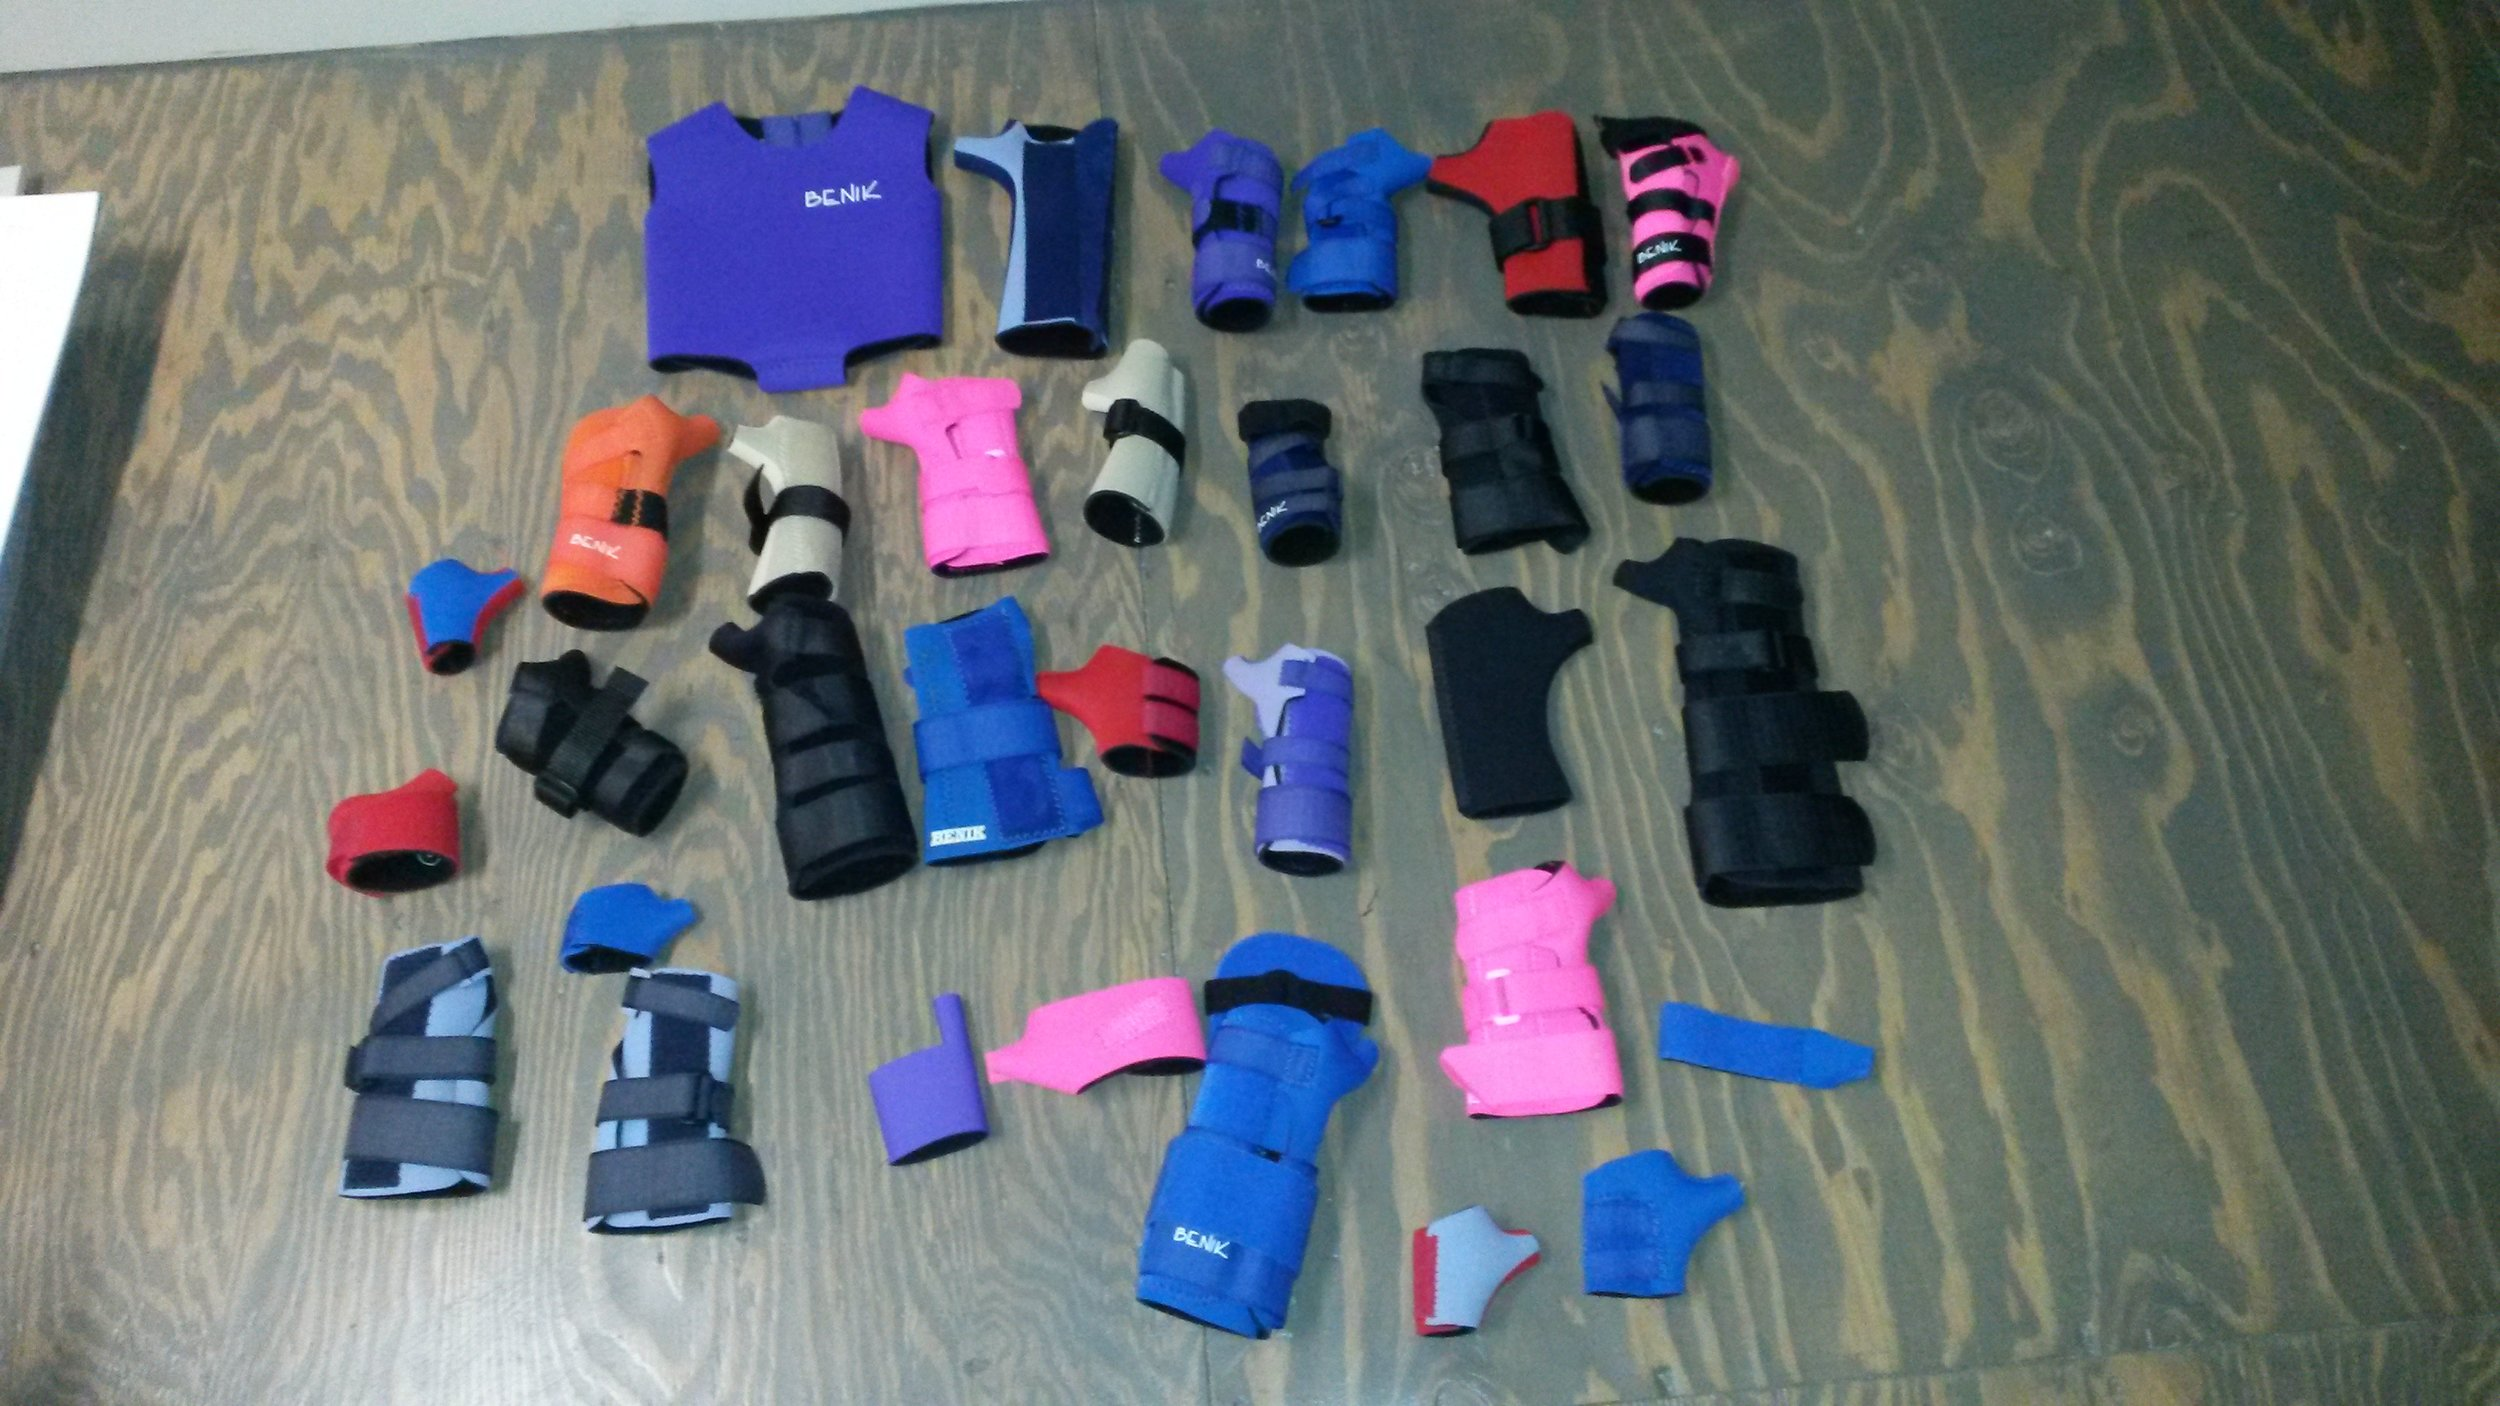 Donated wrist and hand braces from Benik